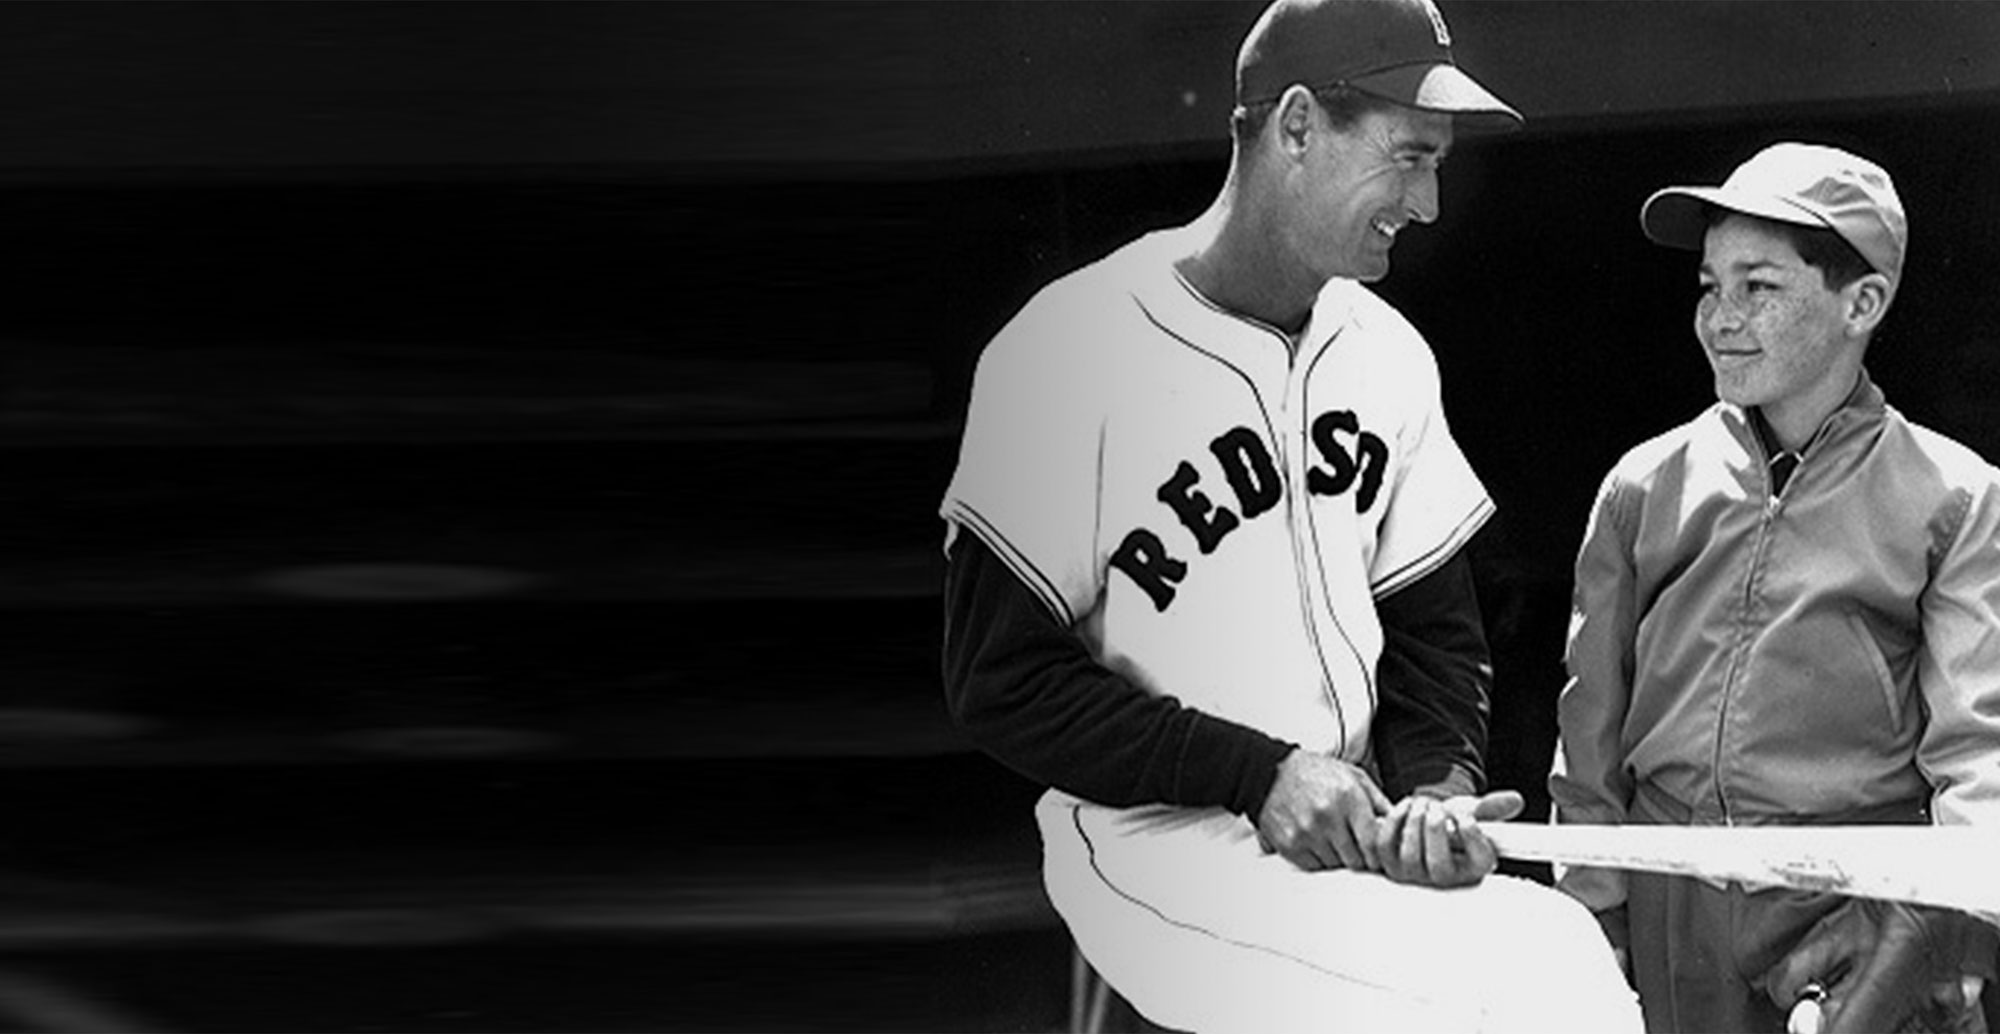 Former Red Sox player Ted Williams with the original 'Jimmy'